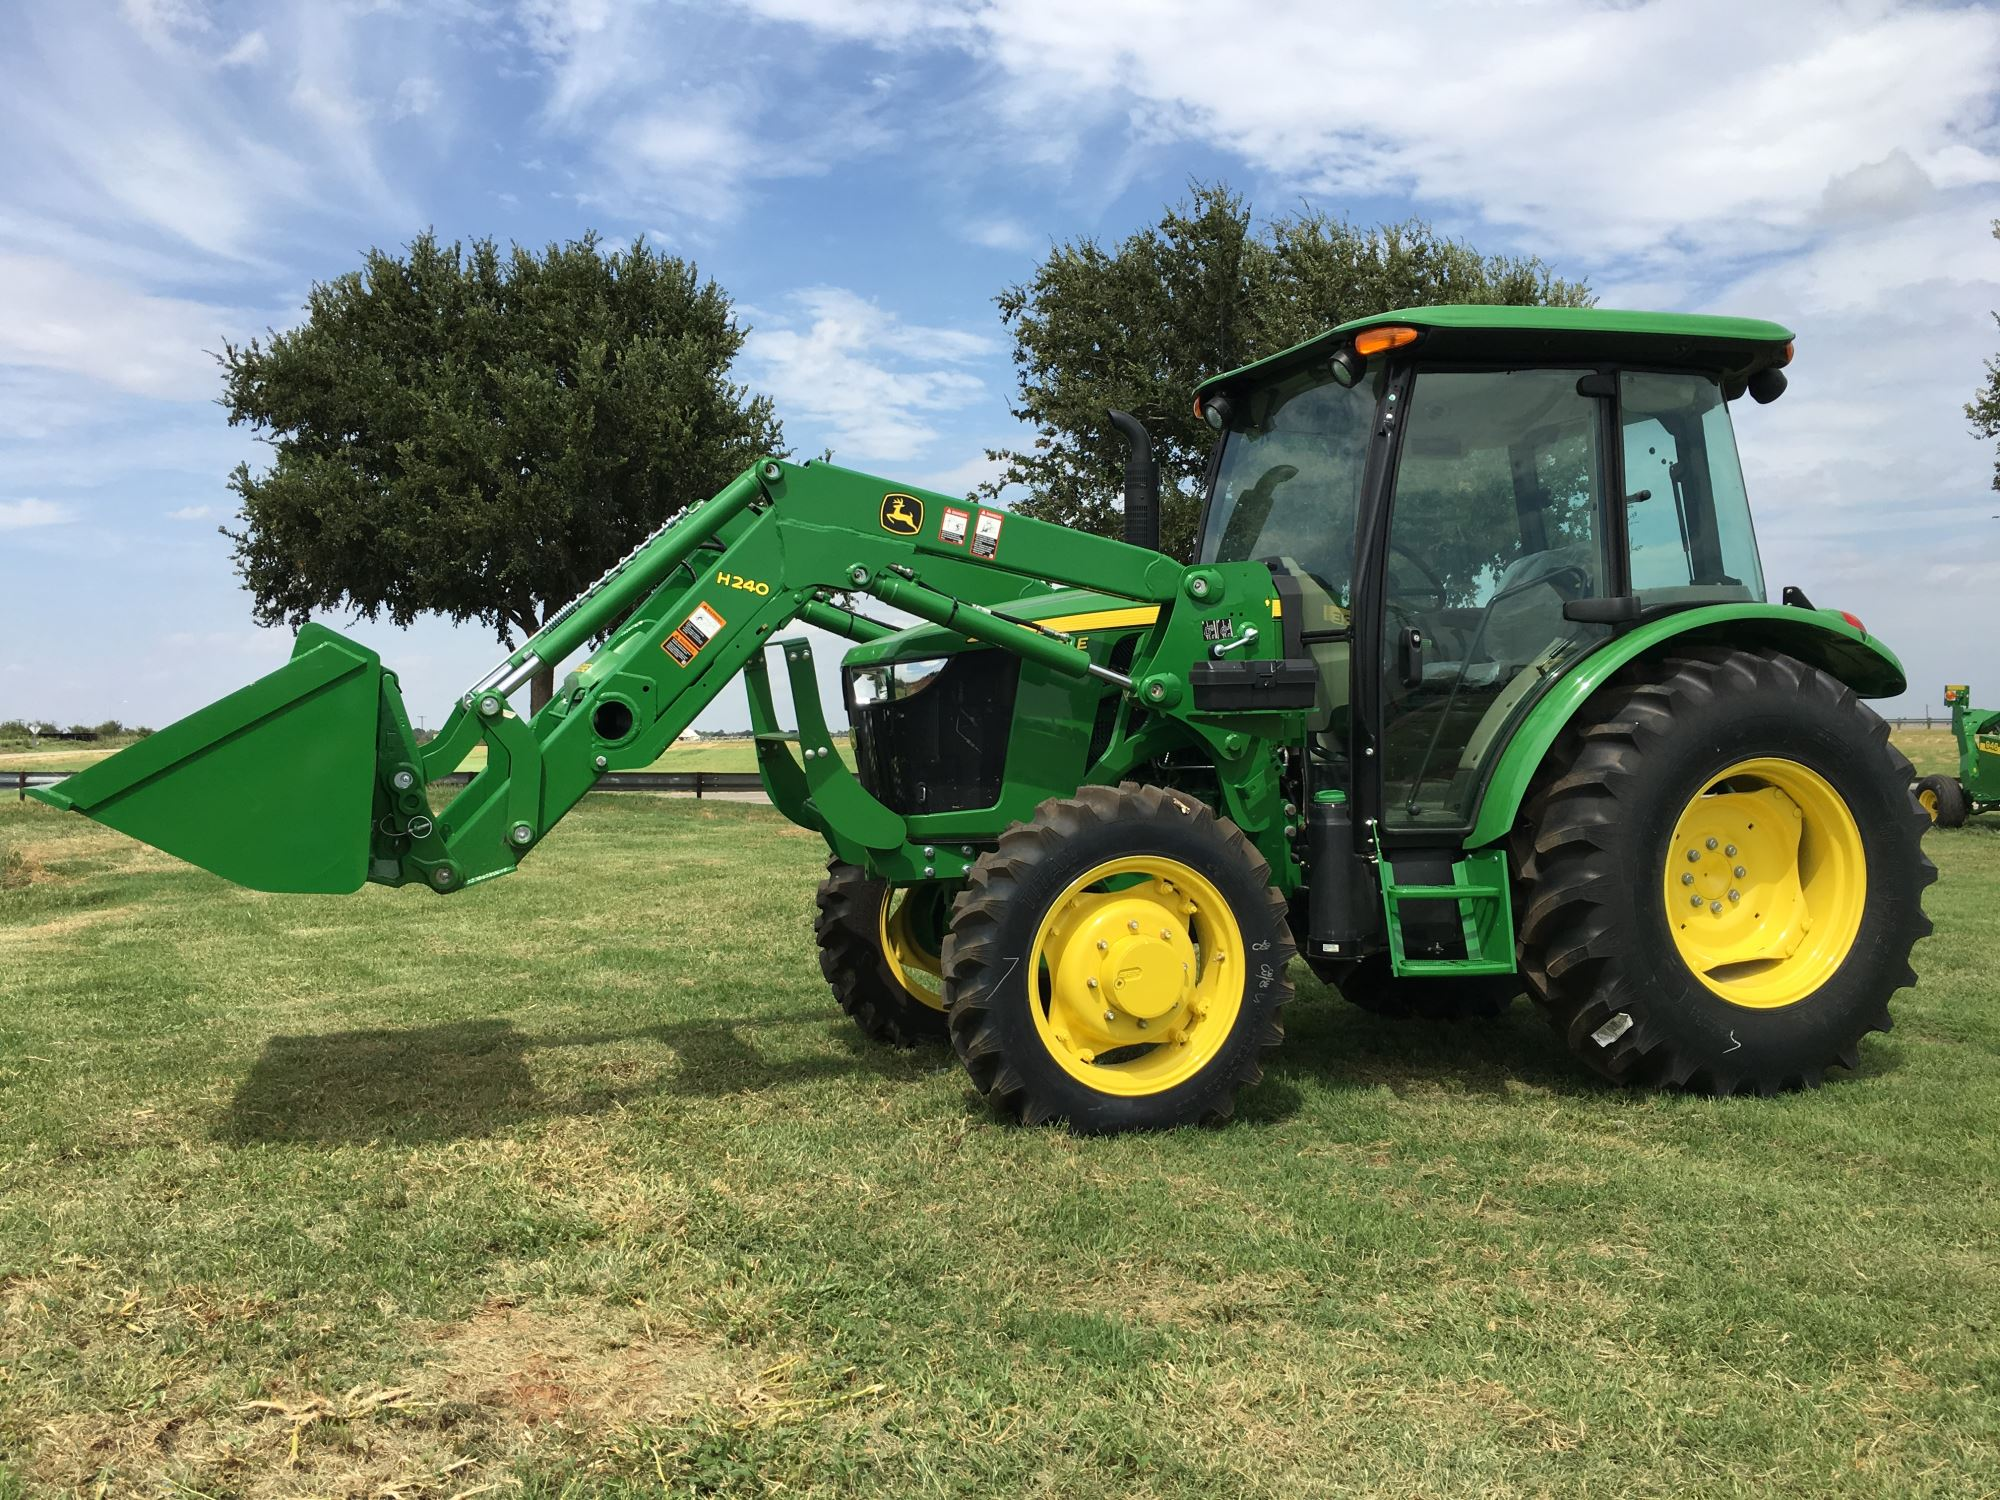 5E Series Utility Tractors - Quality Implement